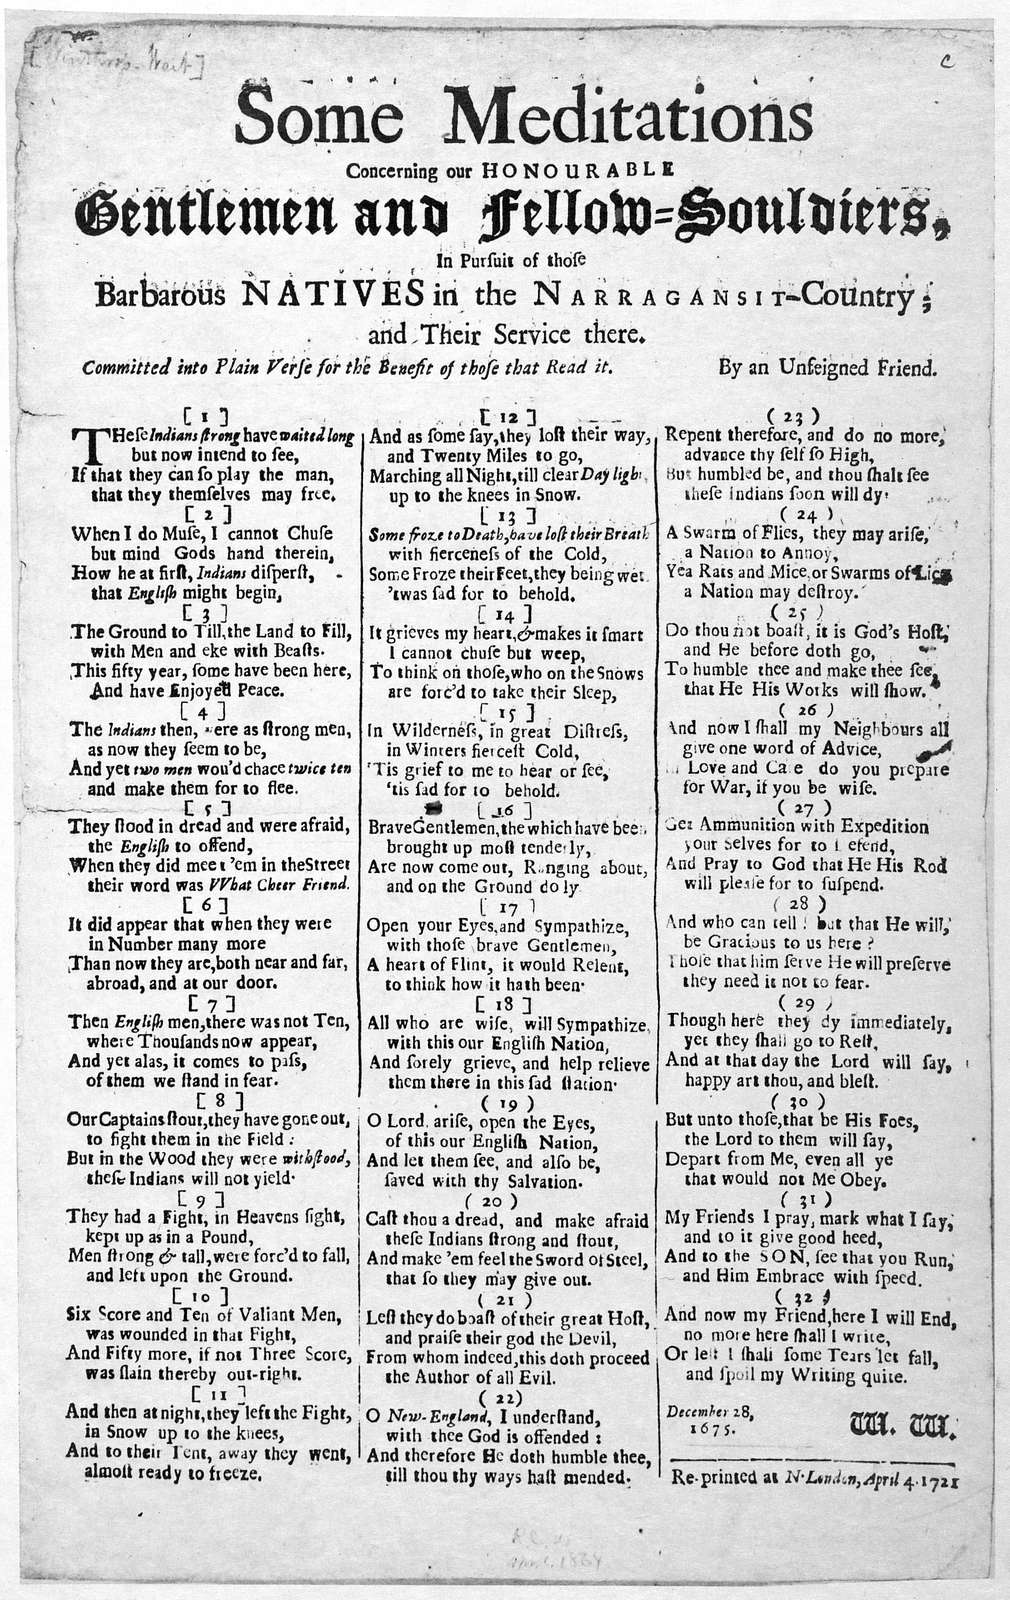 Some meditations concerning our honourable gentlemen and fellow-souldiers, in pursuit of those barbarous natives in the Narragansit-Country; and their service there. By an unfeigned friend. Re-printed at N. London, April 4, 1721.